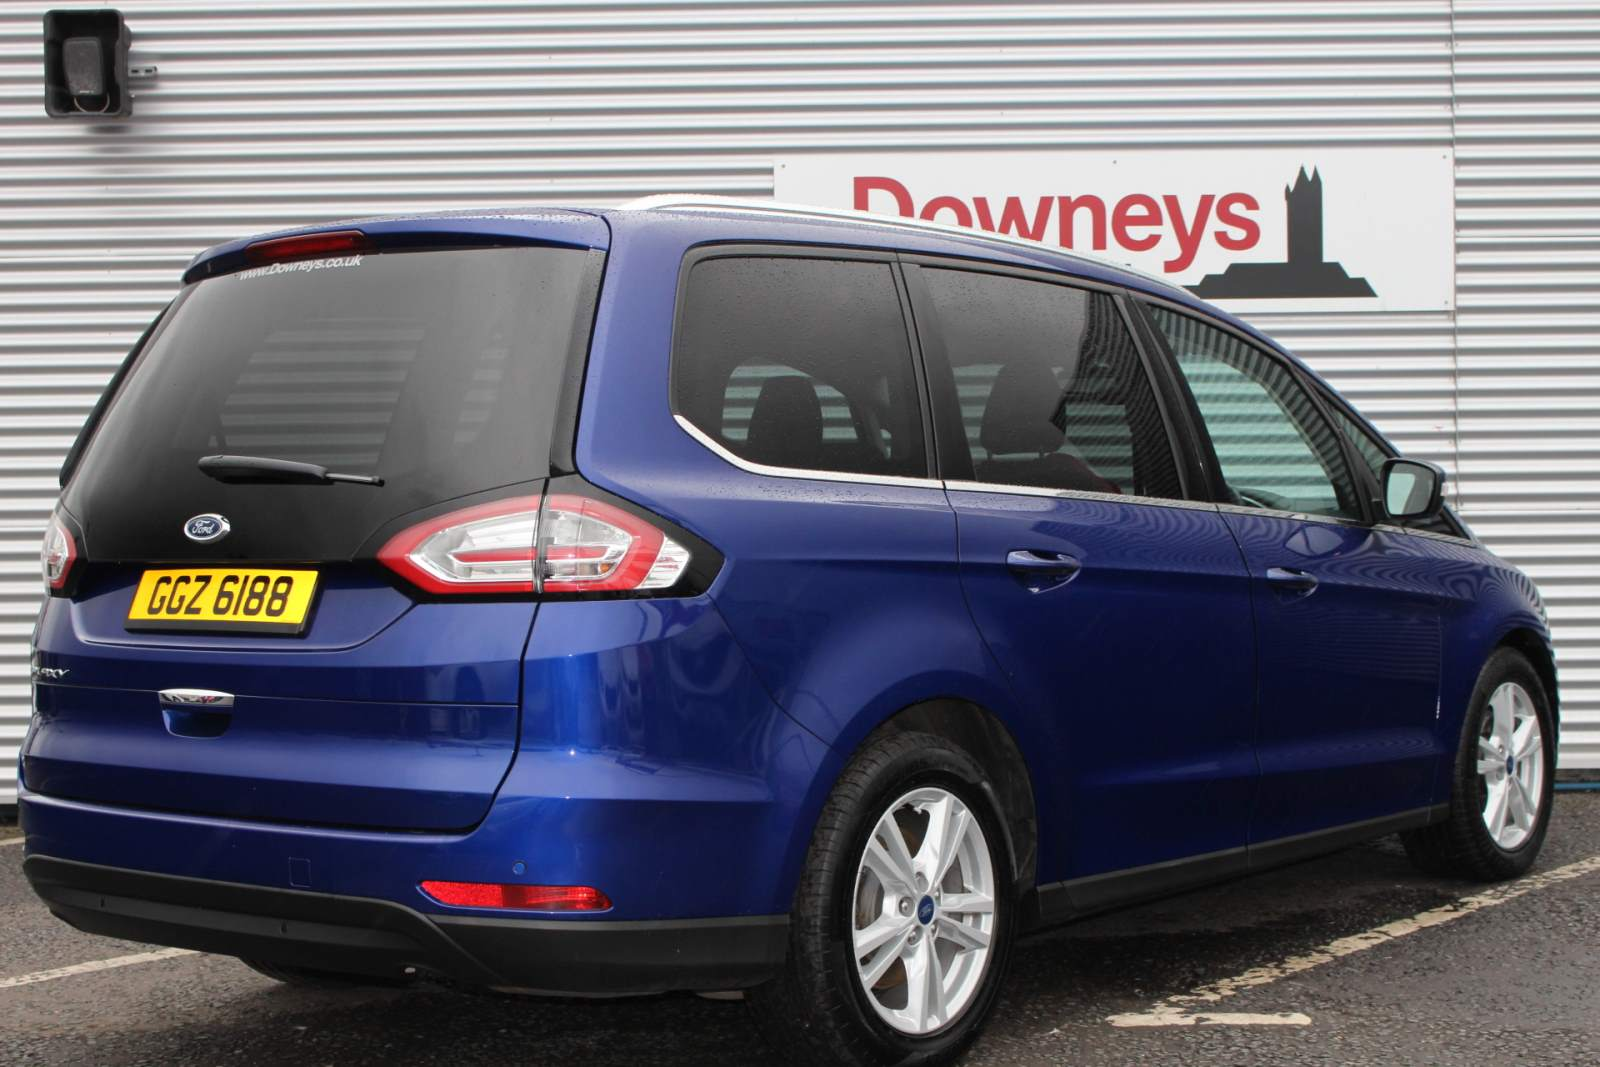 Ford Galaxy Titanium Tdci Auto 7 Seater For Sale At Downeys